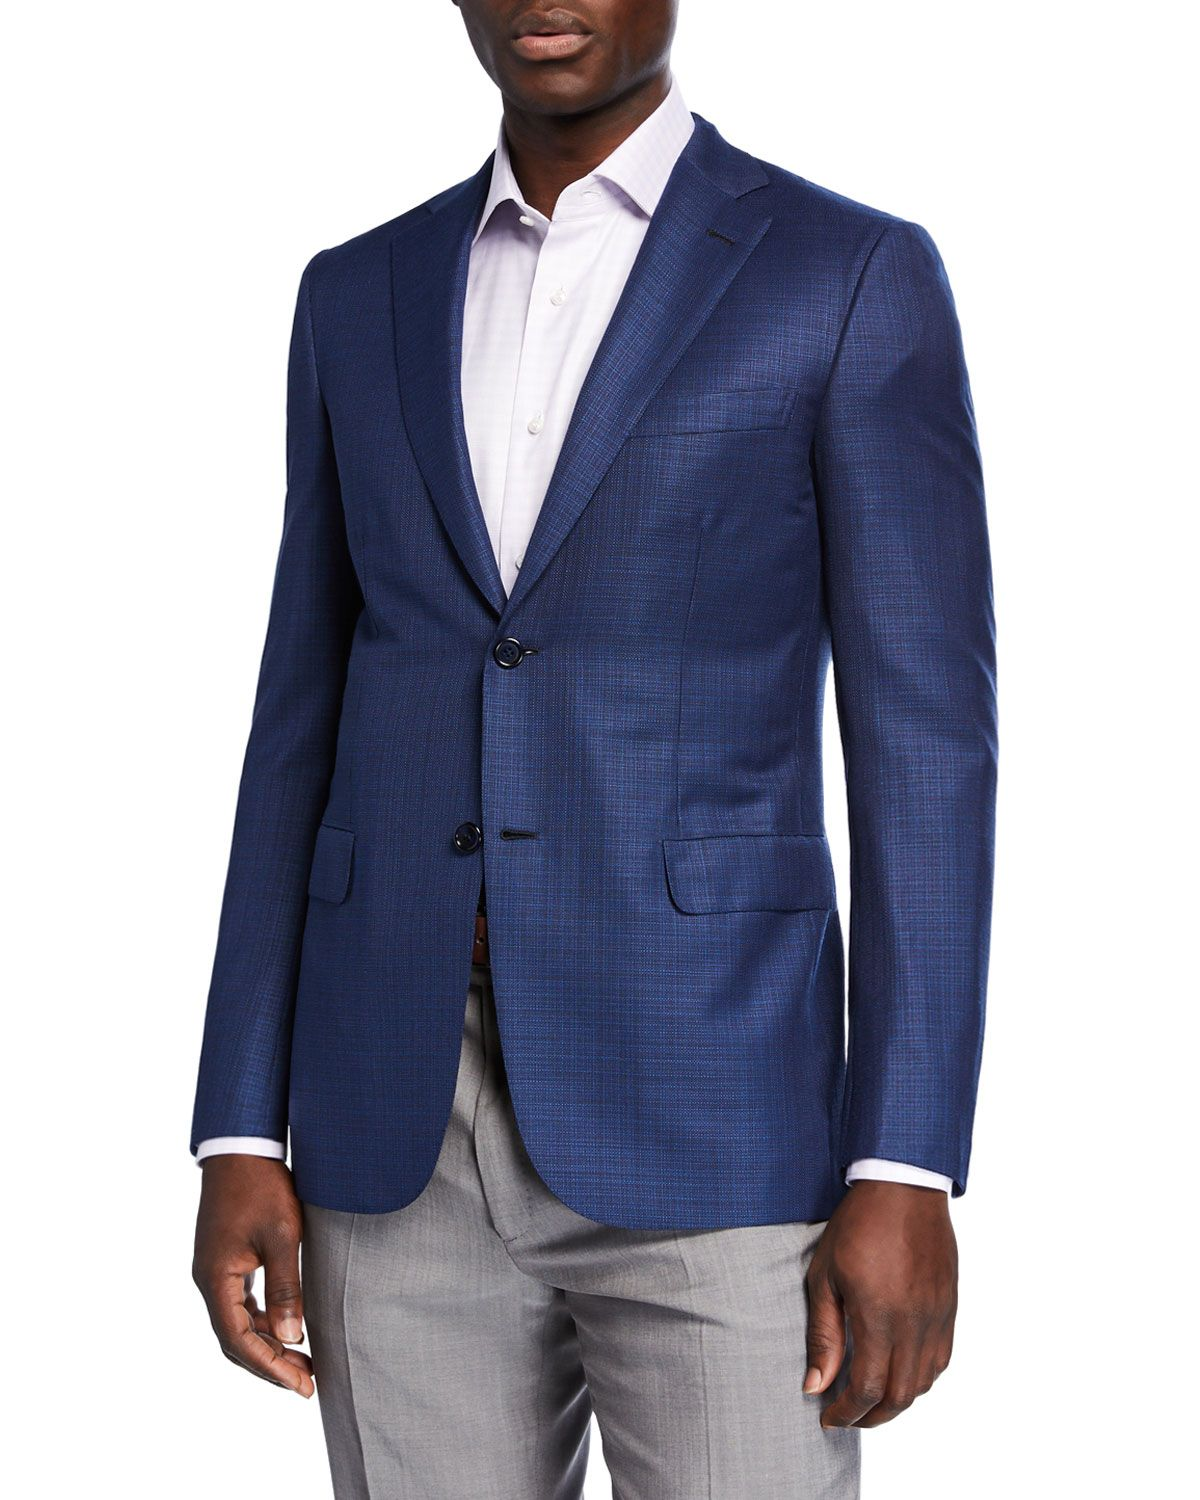 Men S Textured Wool Two Button Jacket In Blue Jacket Buttons Brioni Men Jackets